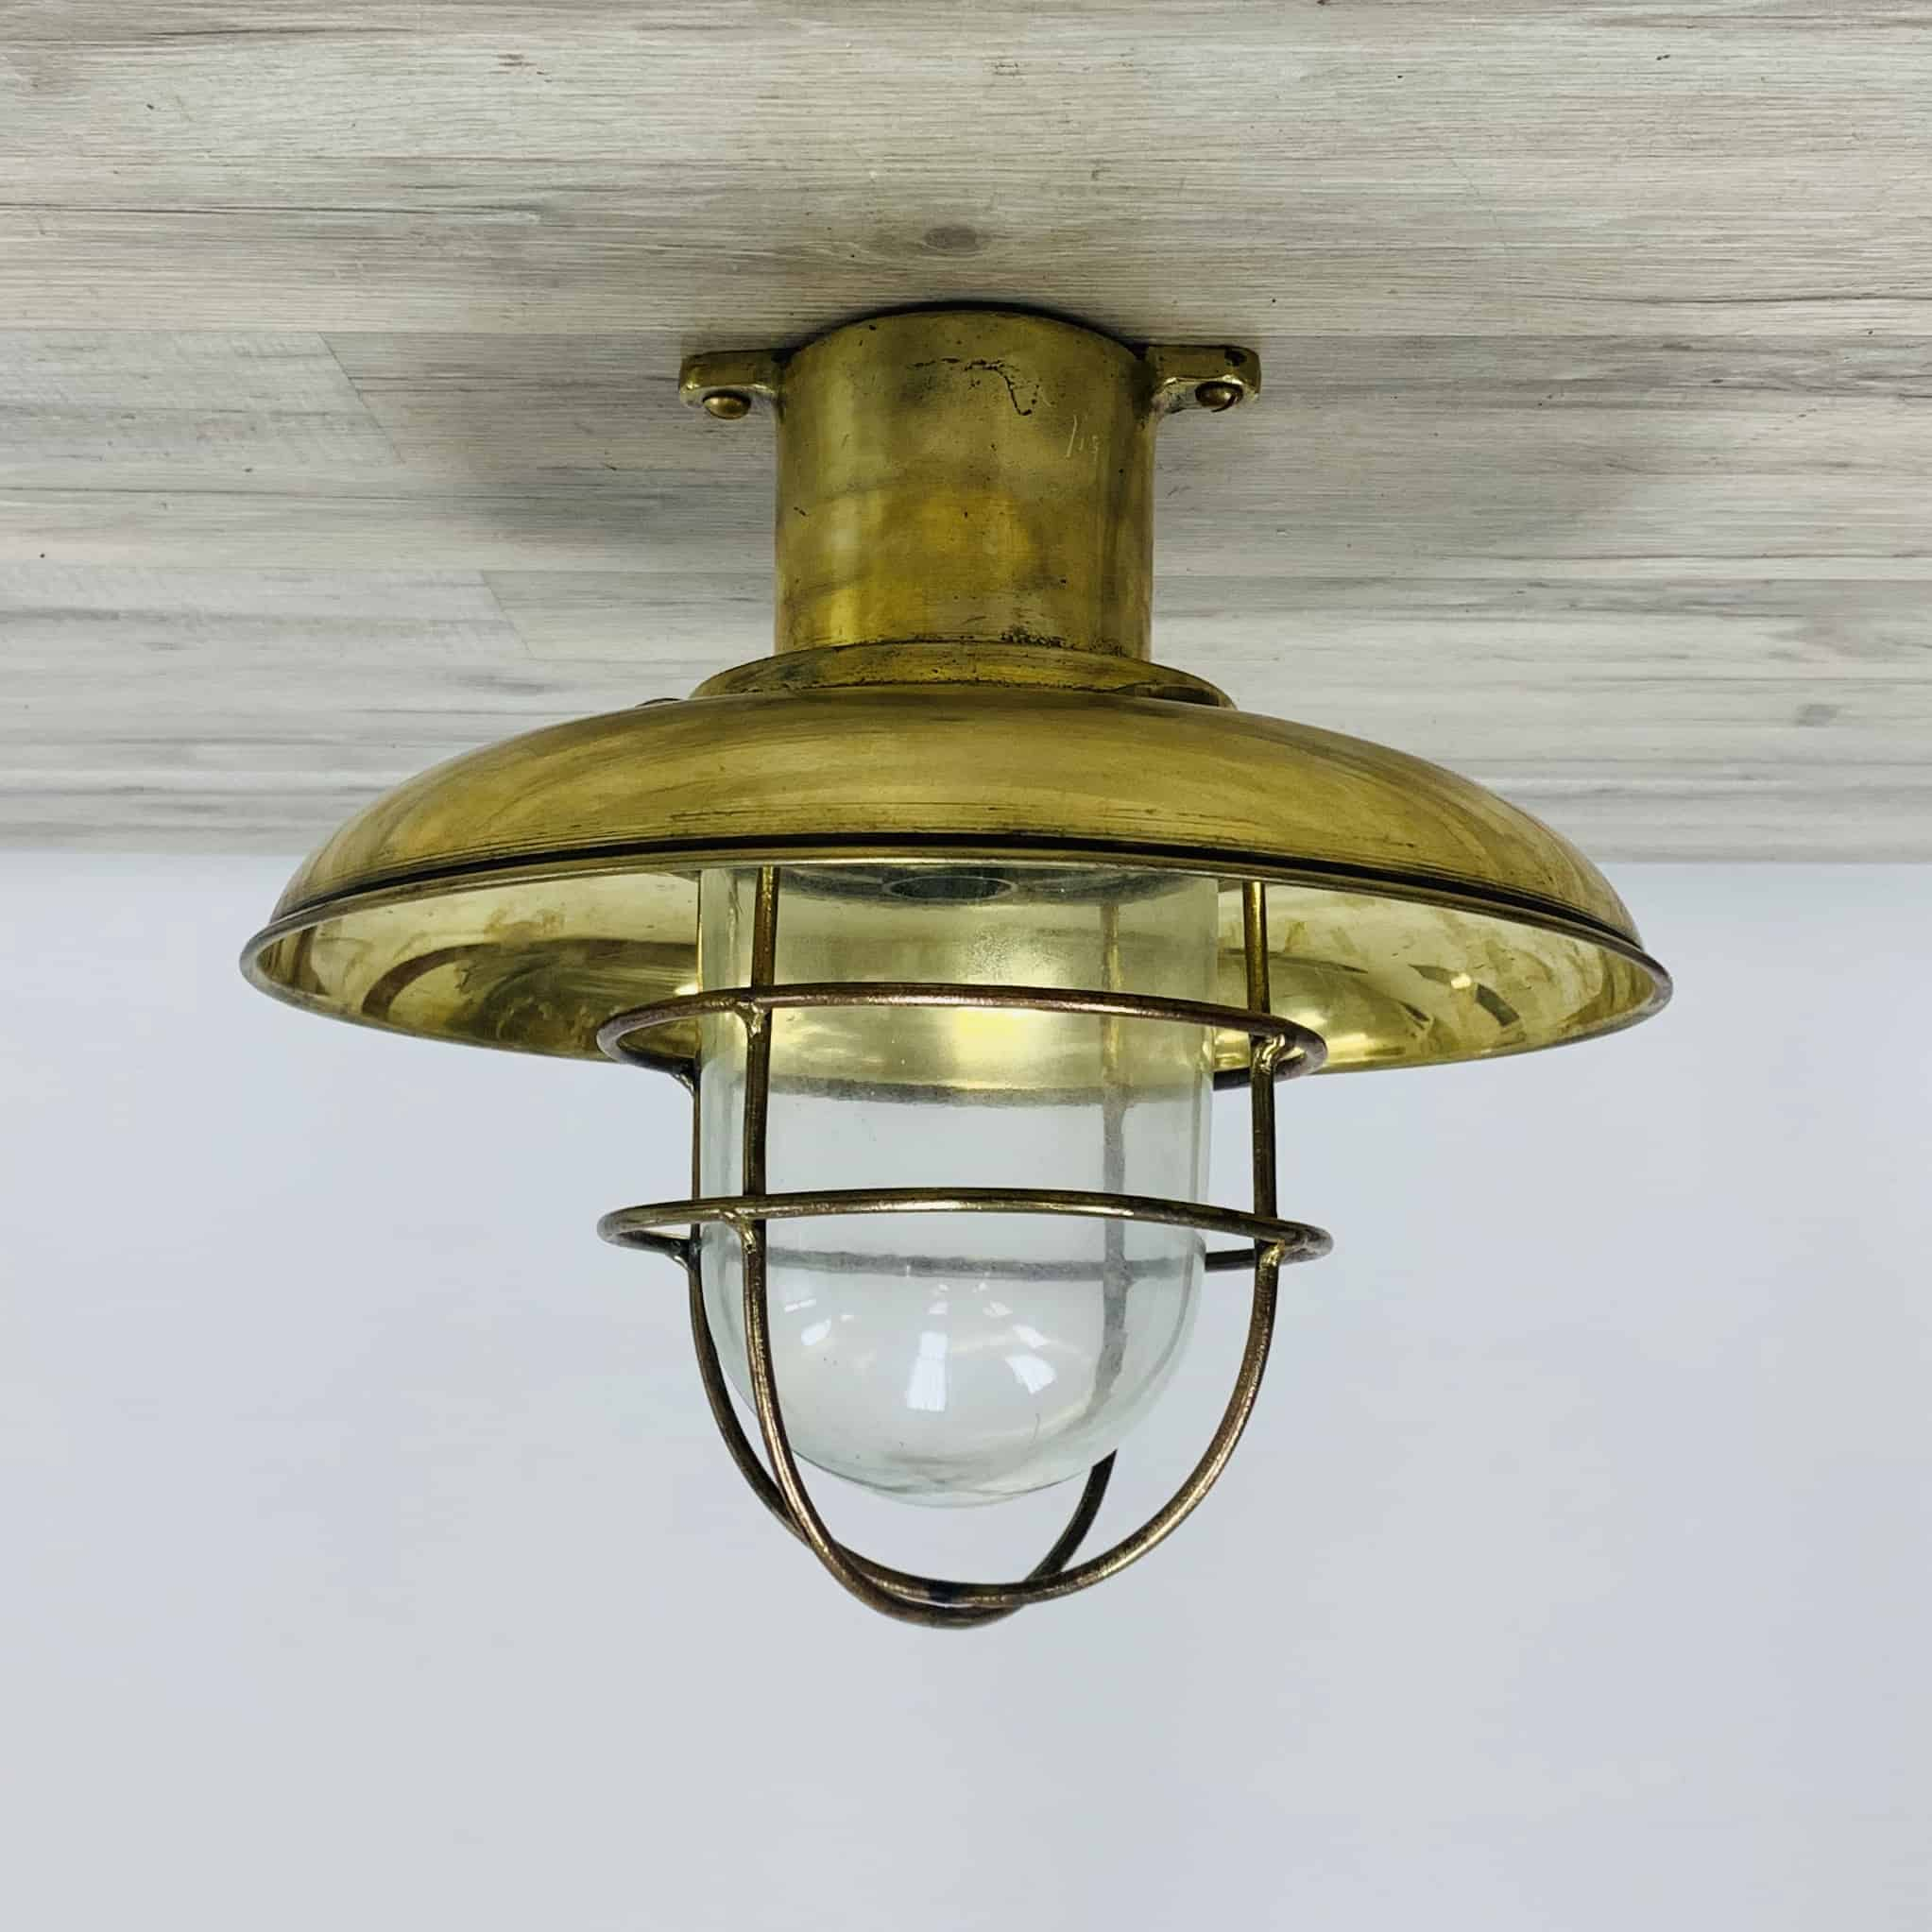 Ceiling Light With Cover Br